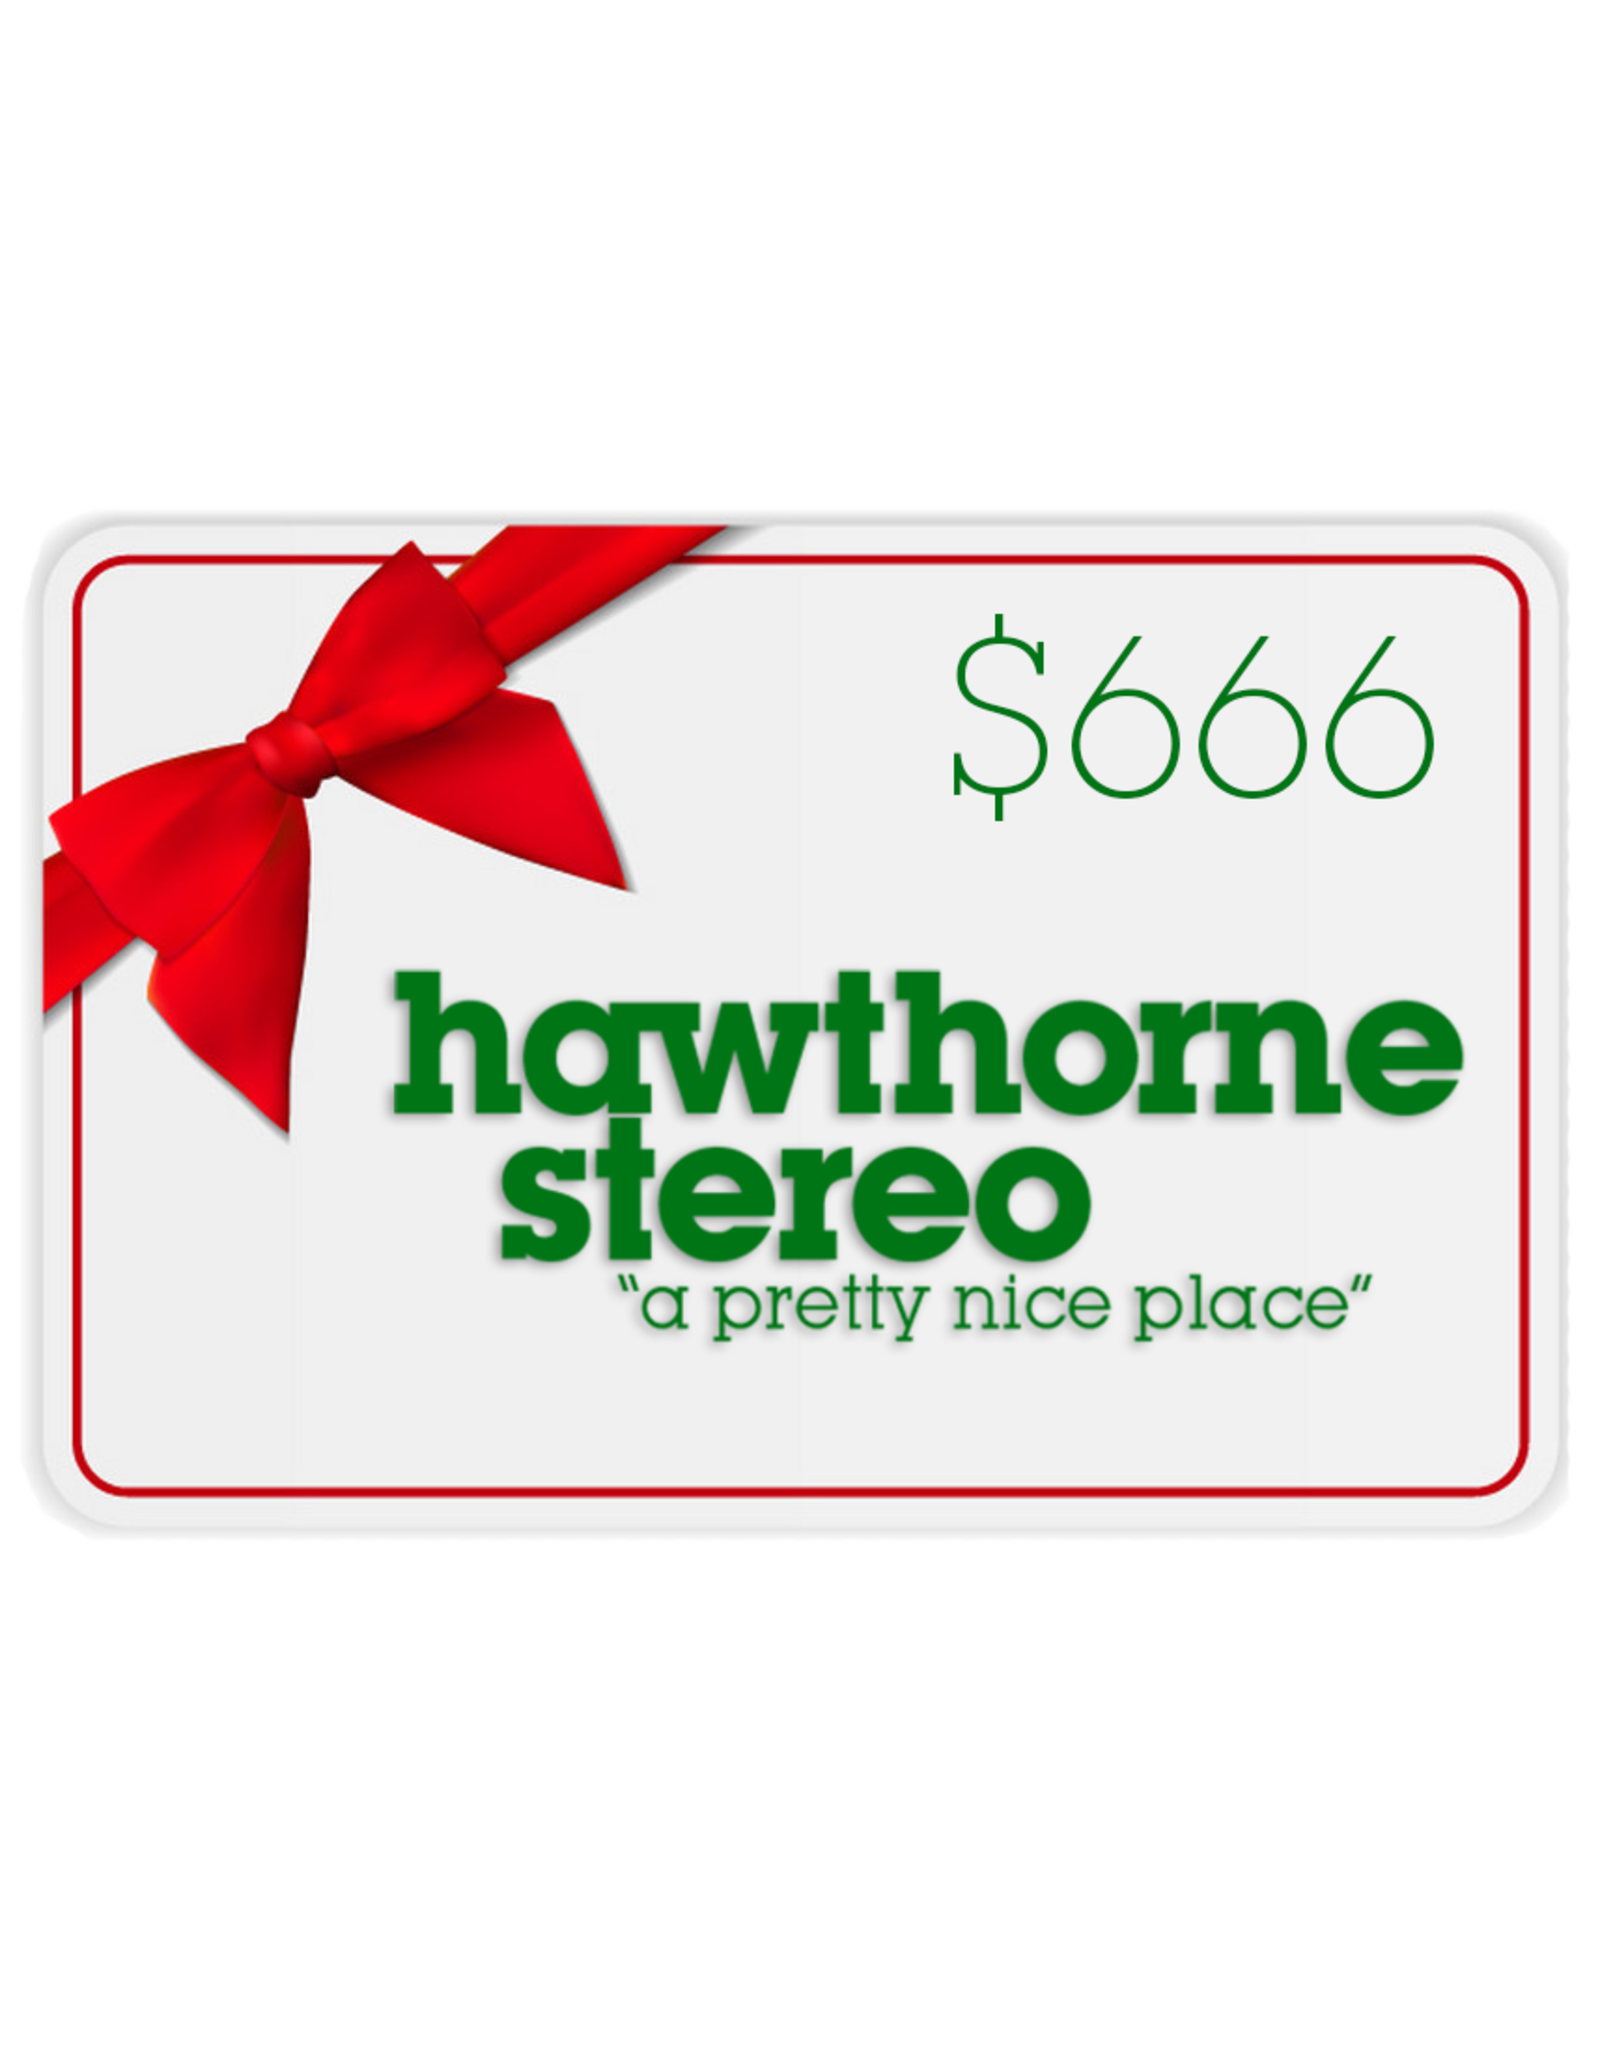 Hawthorne Stereo Gift Card for In-Store Use $666 (Metalhead Special)